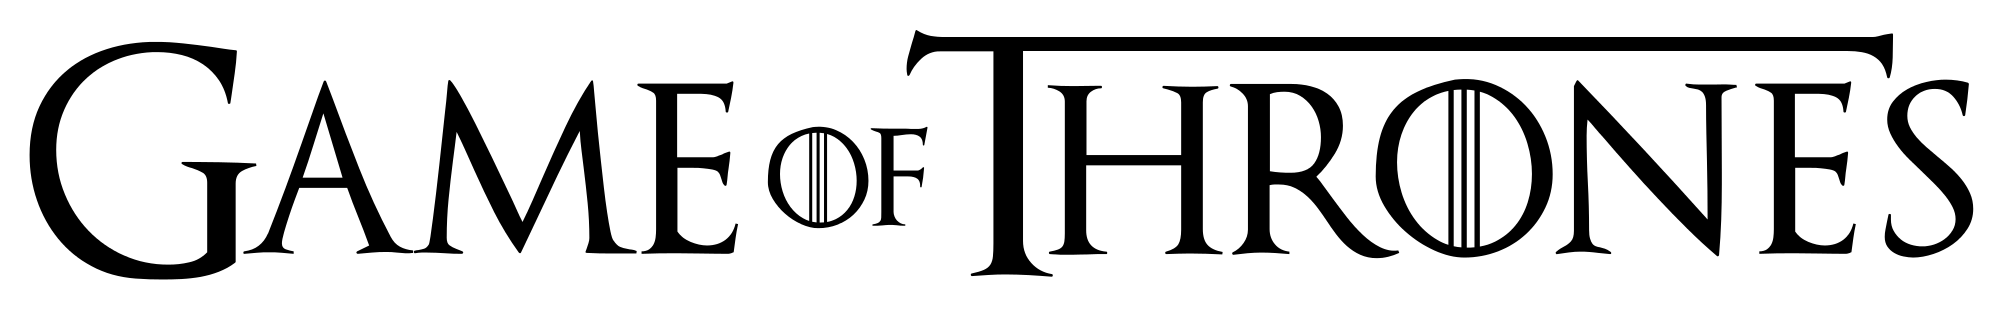 Games of thrones png. Game logo transparent images